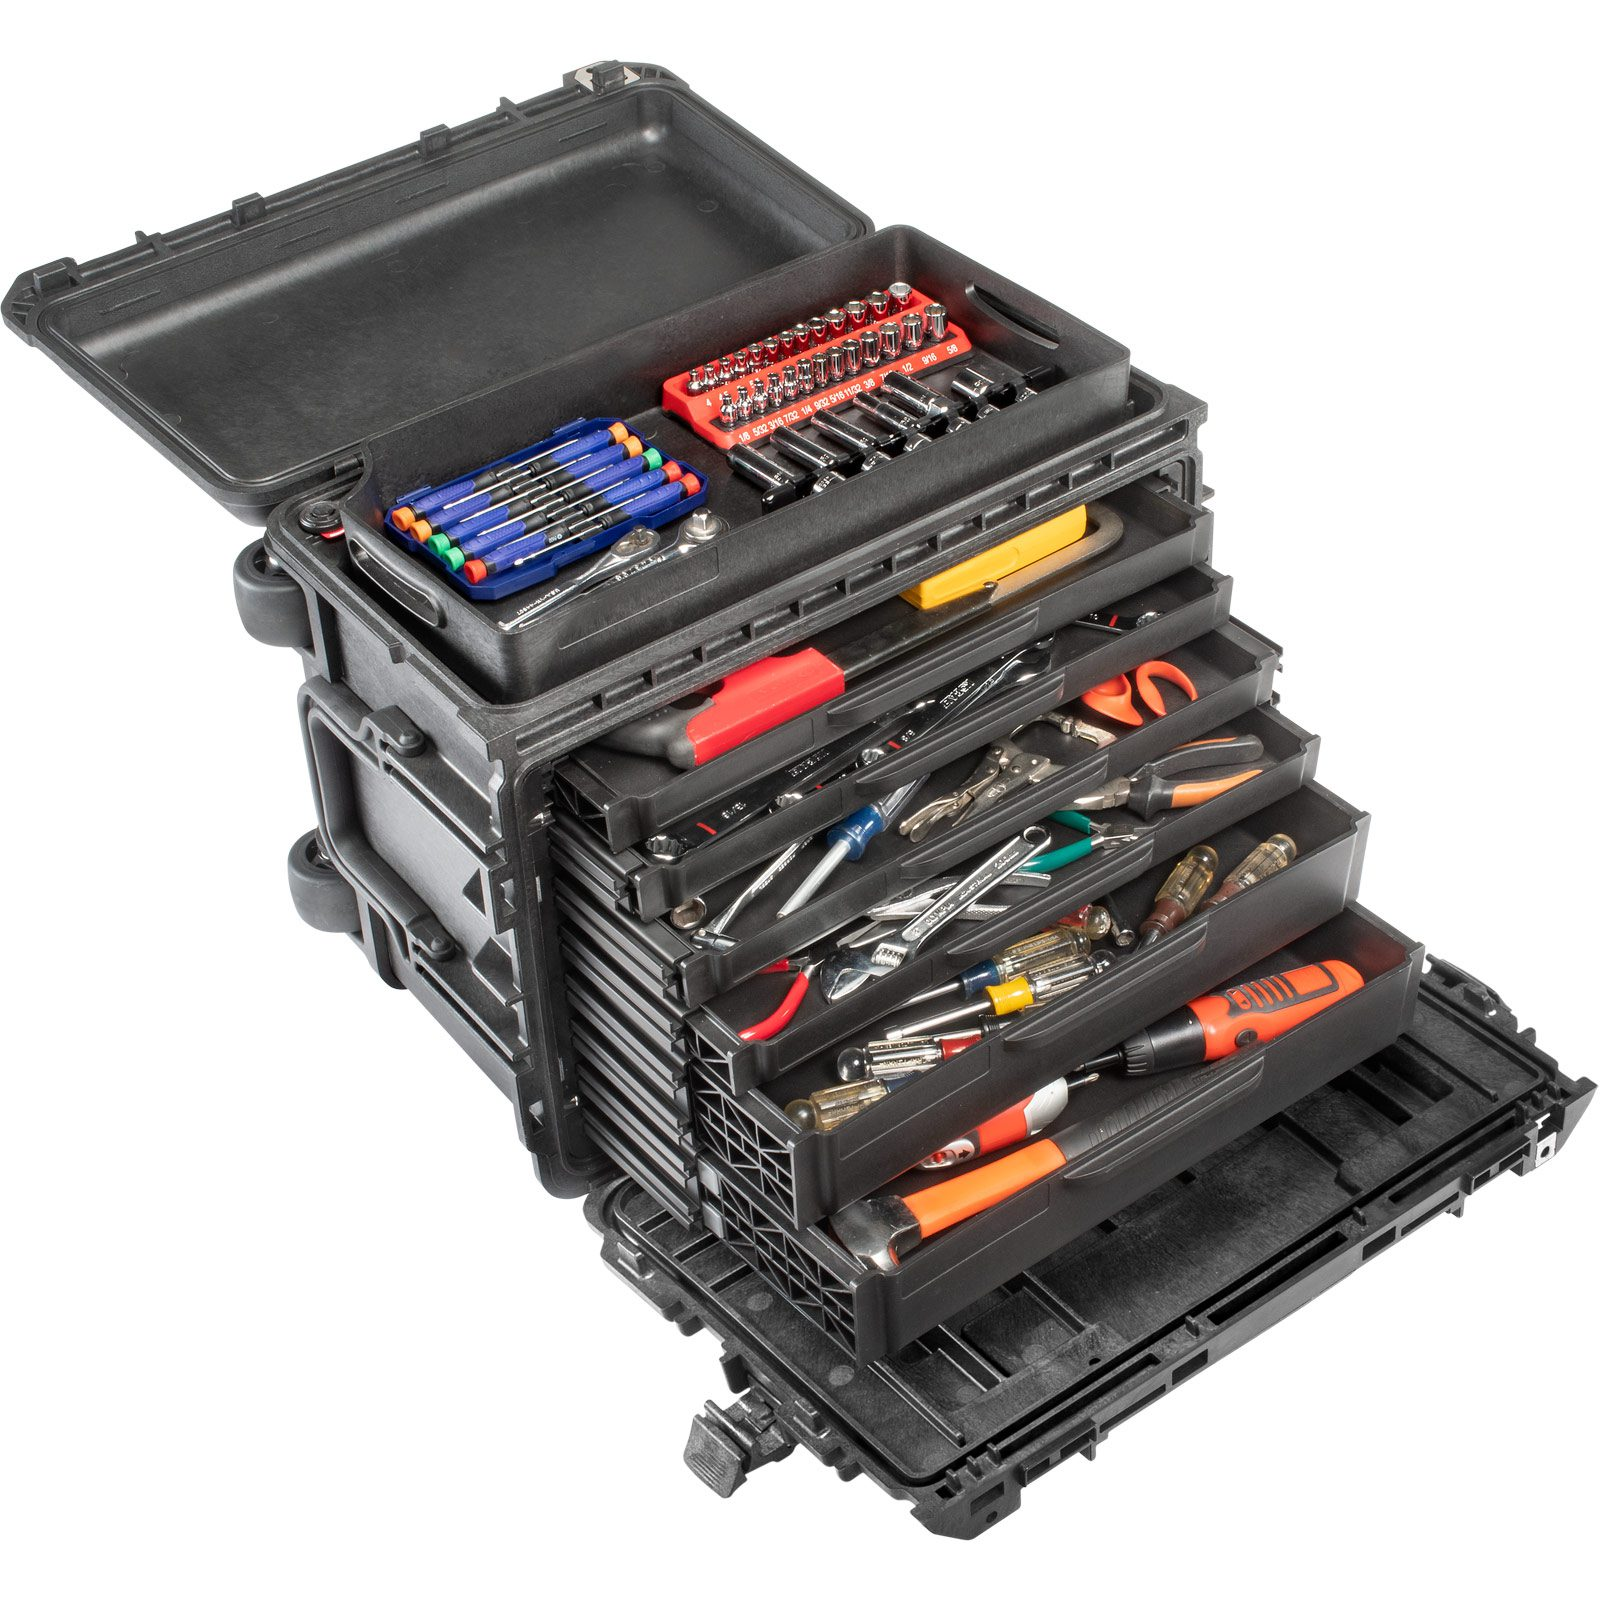 pelican-0450-mobile-protector-tool-chest